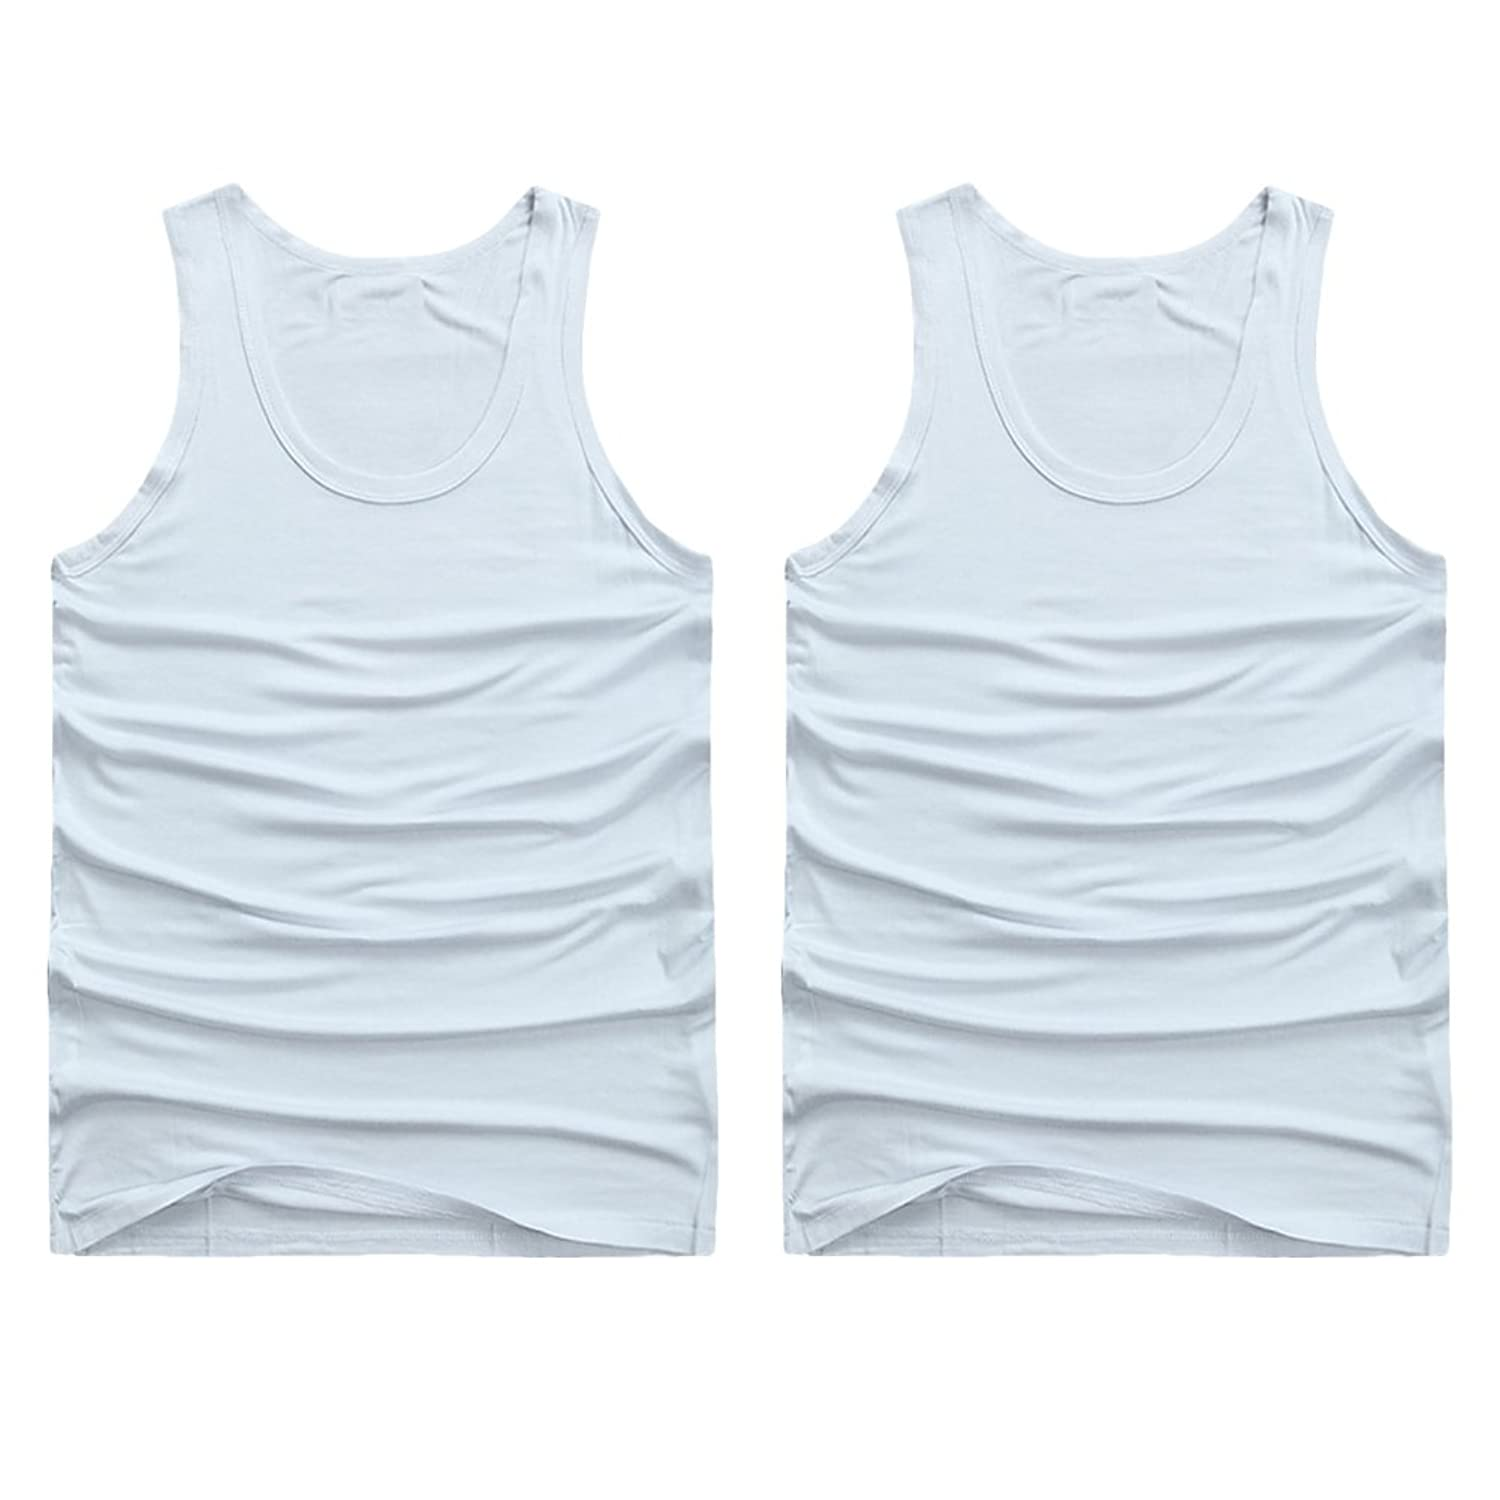 Zhhlinyuan メンズタンクトップMen's Elastic Vest Training Gym Lose Weight Shirt[2 Pack]